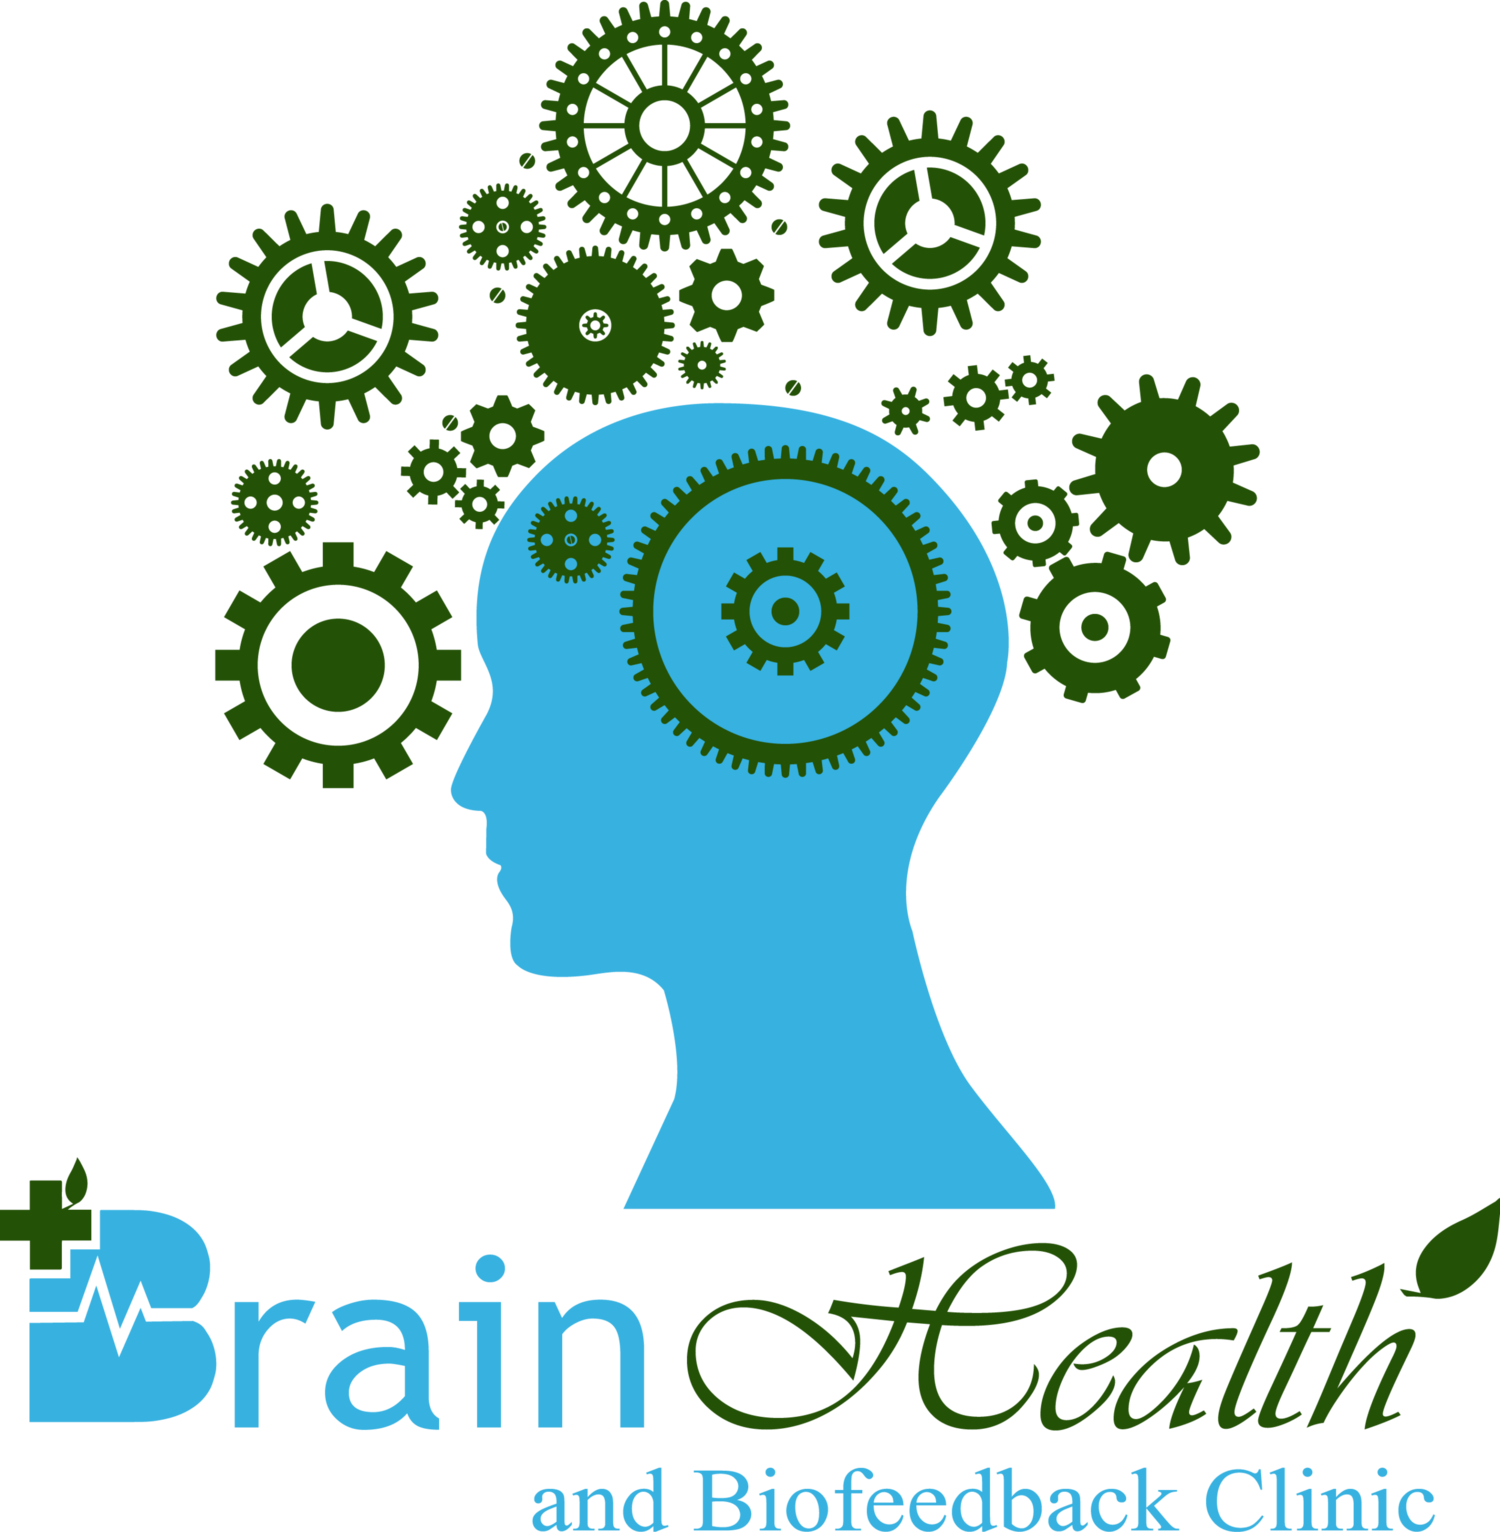 Brain Health and Biofeedback Clinic